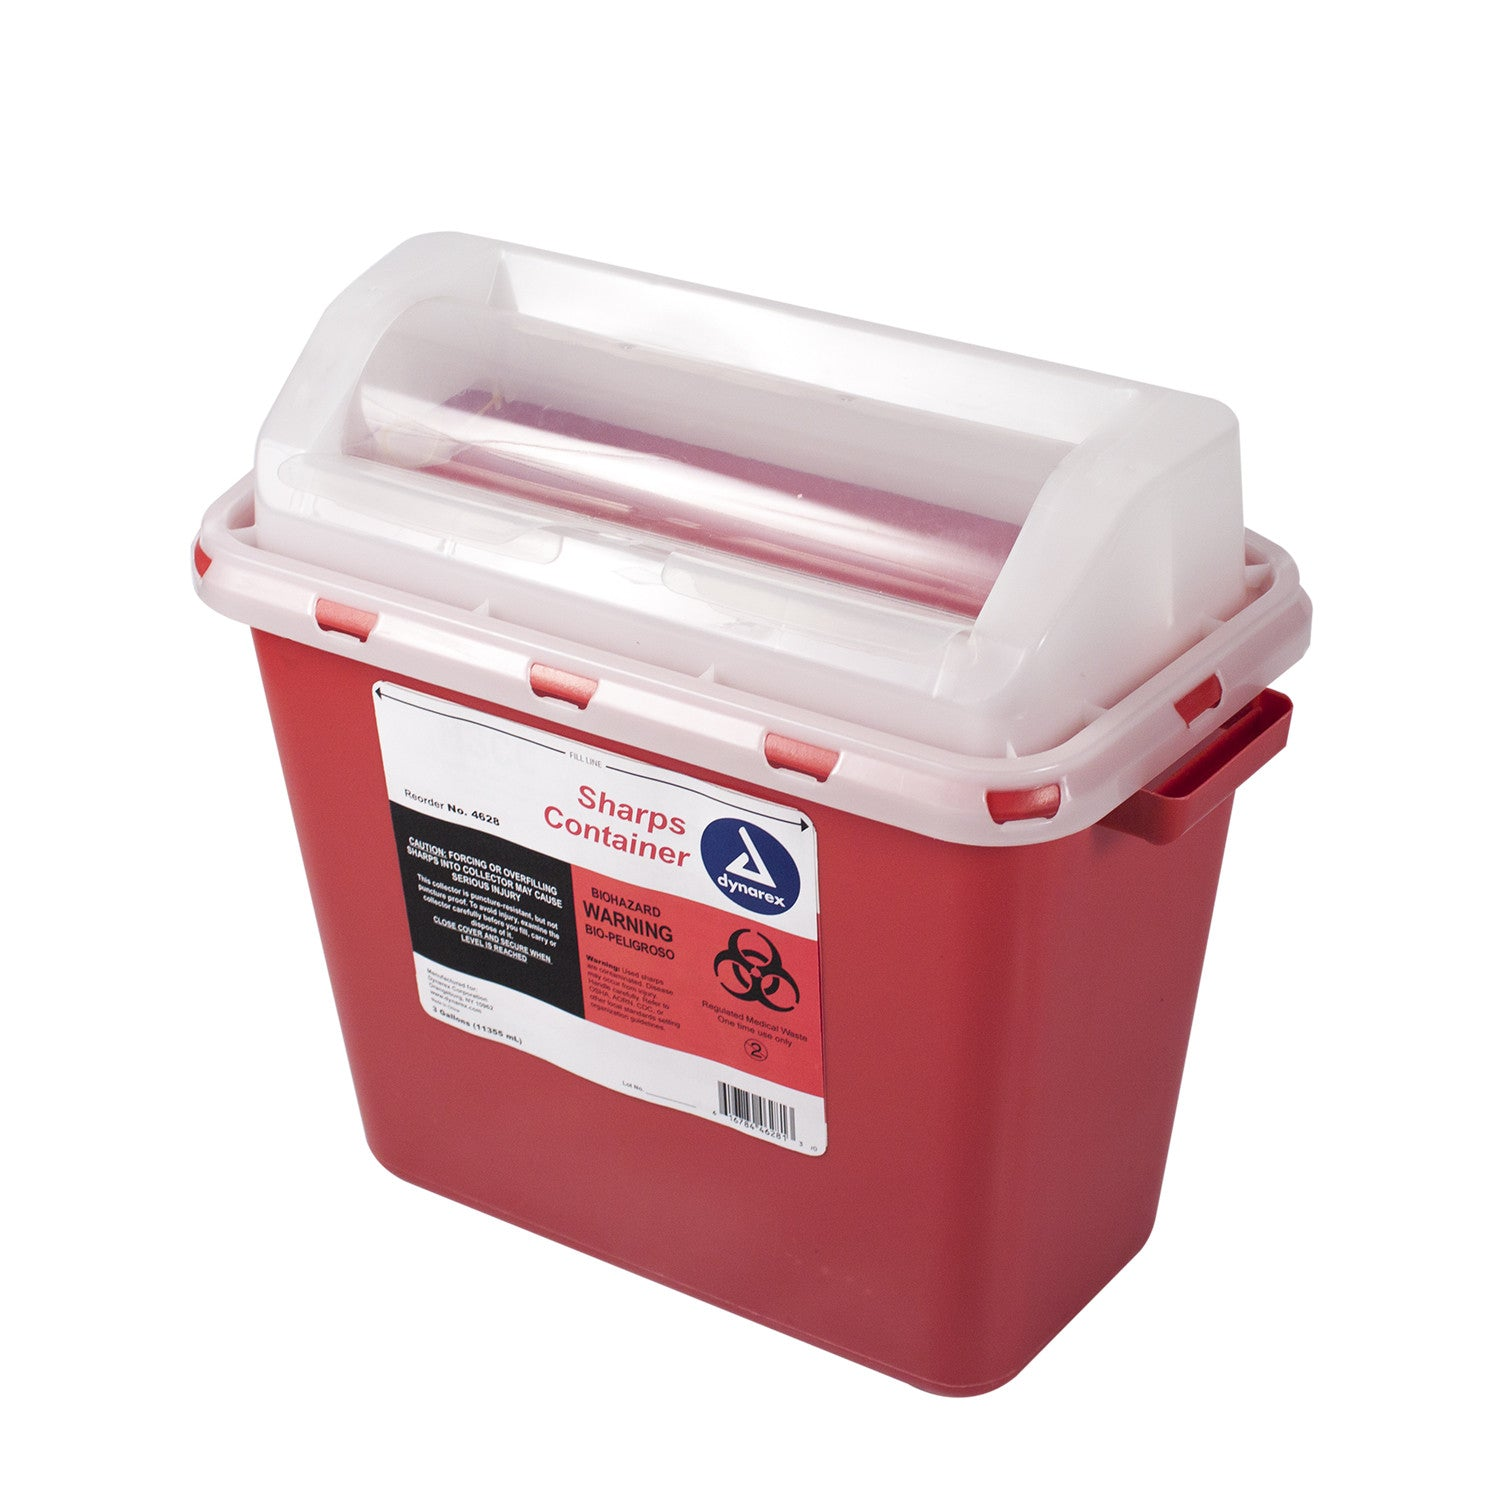 Sharps Container - 3 Gallon